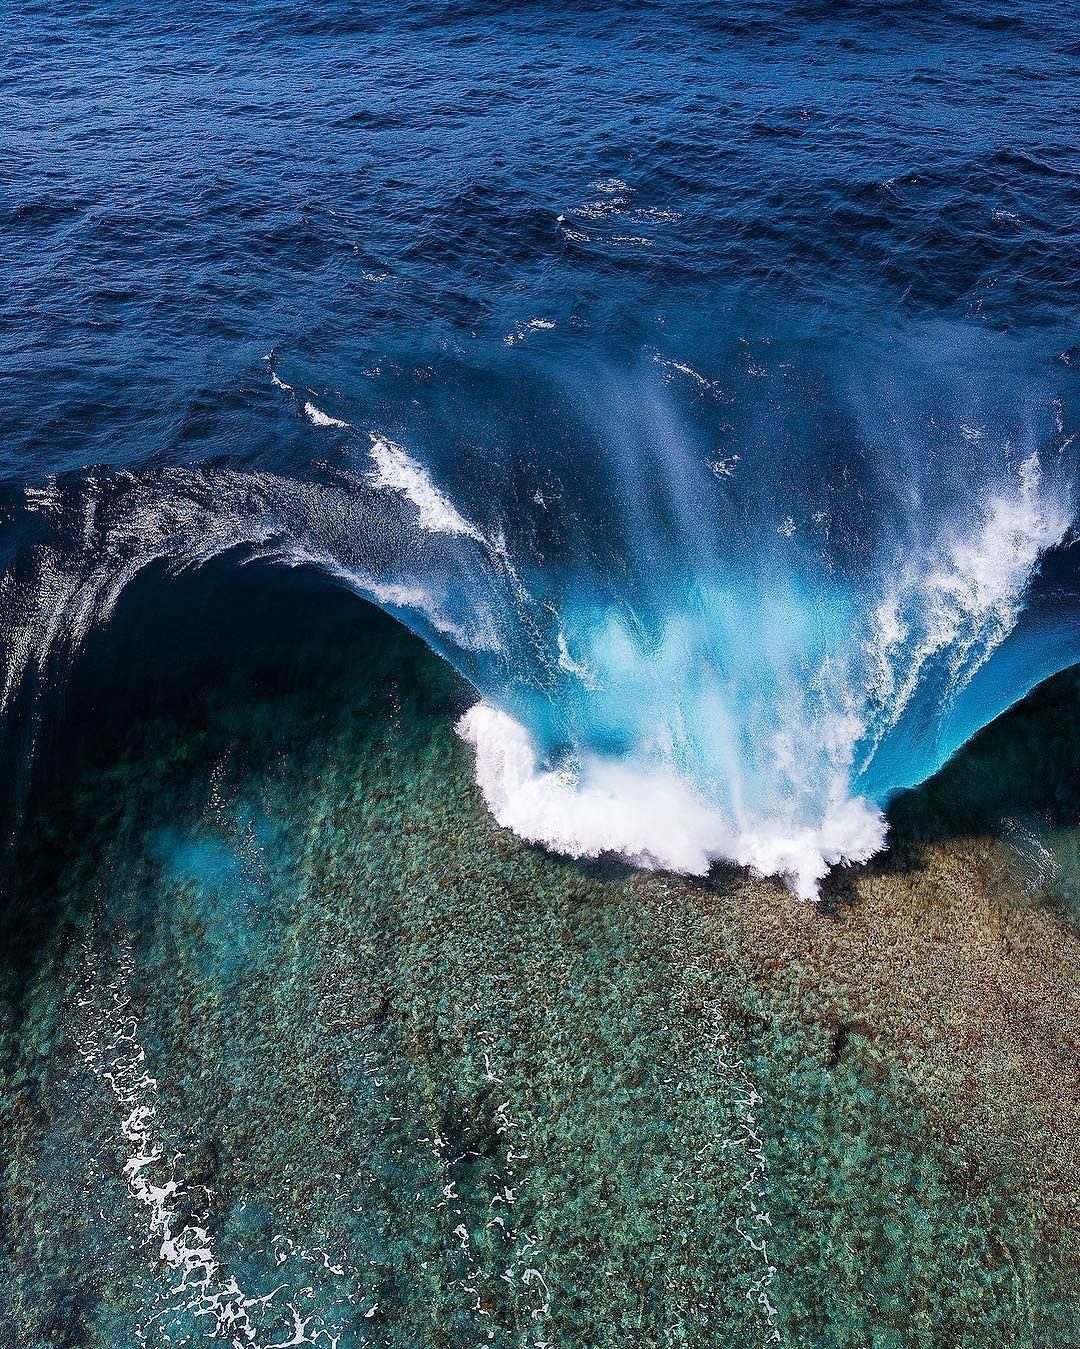 Polarpro On Instagram Sometimes You Just Have To Go With The Waves Pick Up The Phantom 4 Pro Cinema Series Collecti Surfing Waves Waves Surfing Photography